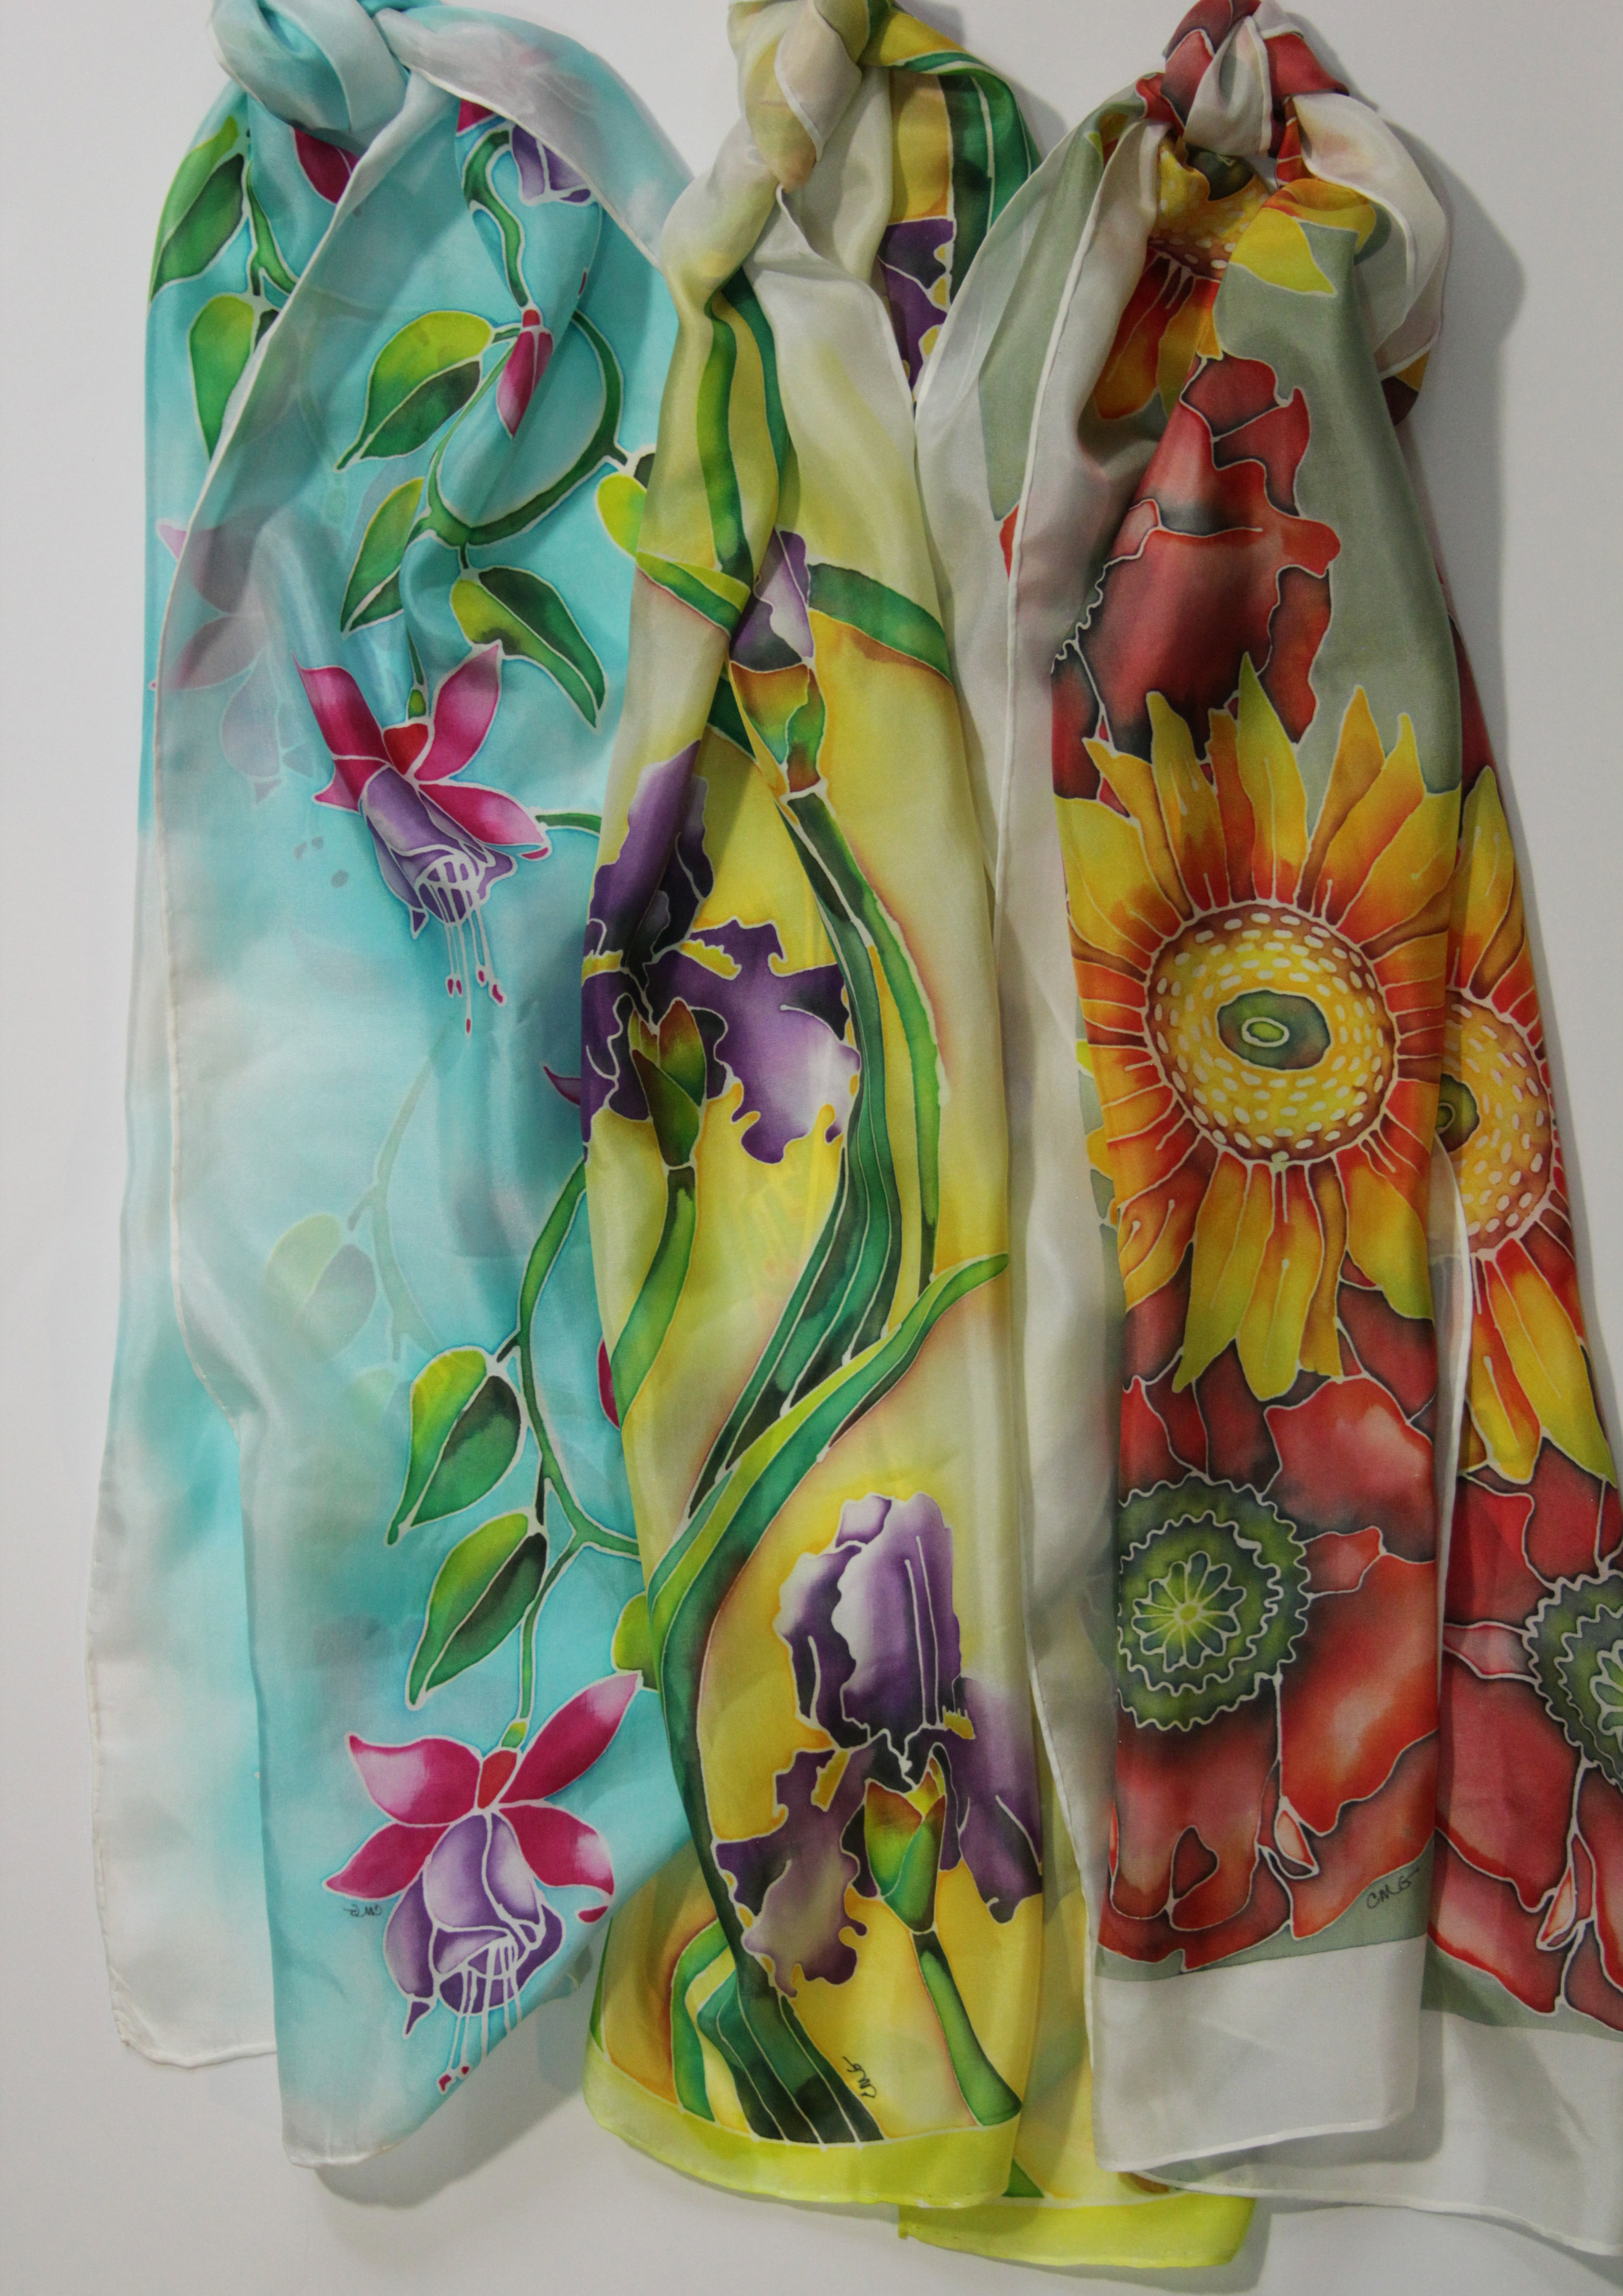 The three scarves shown together